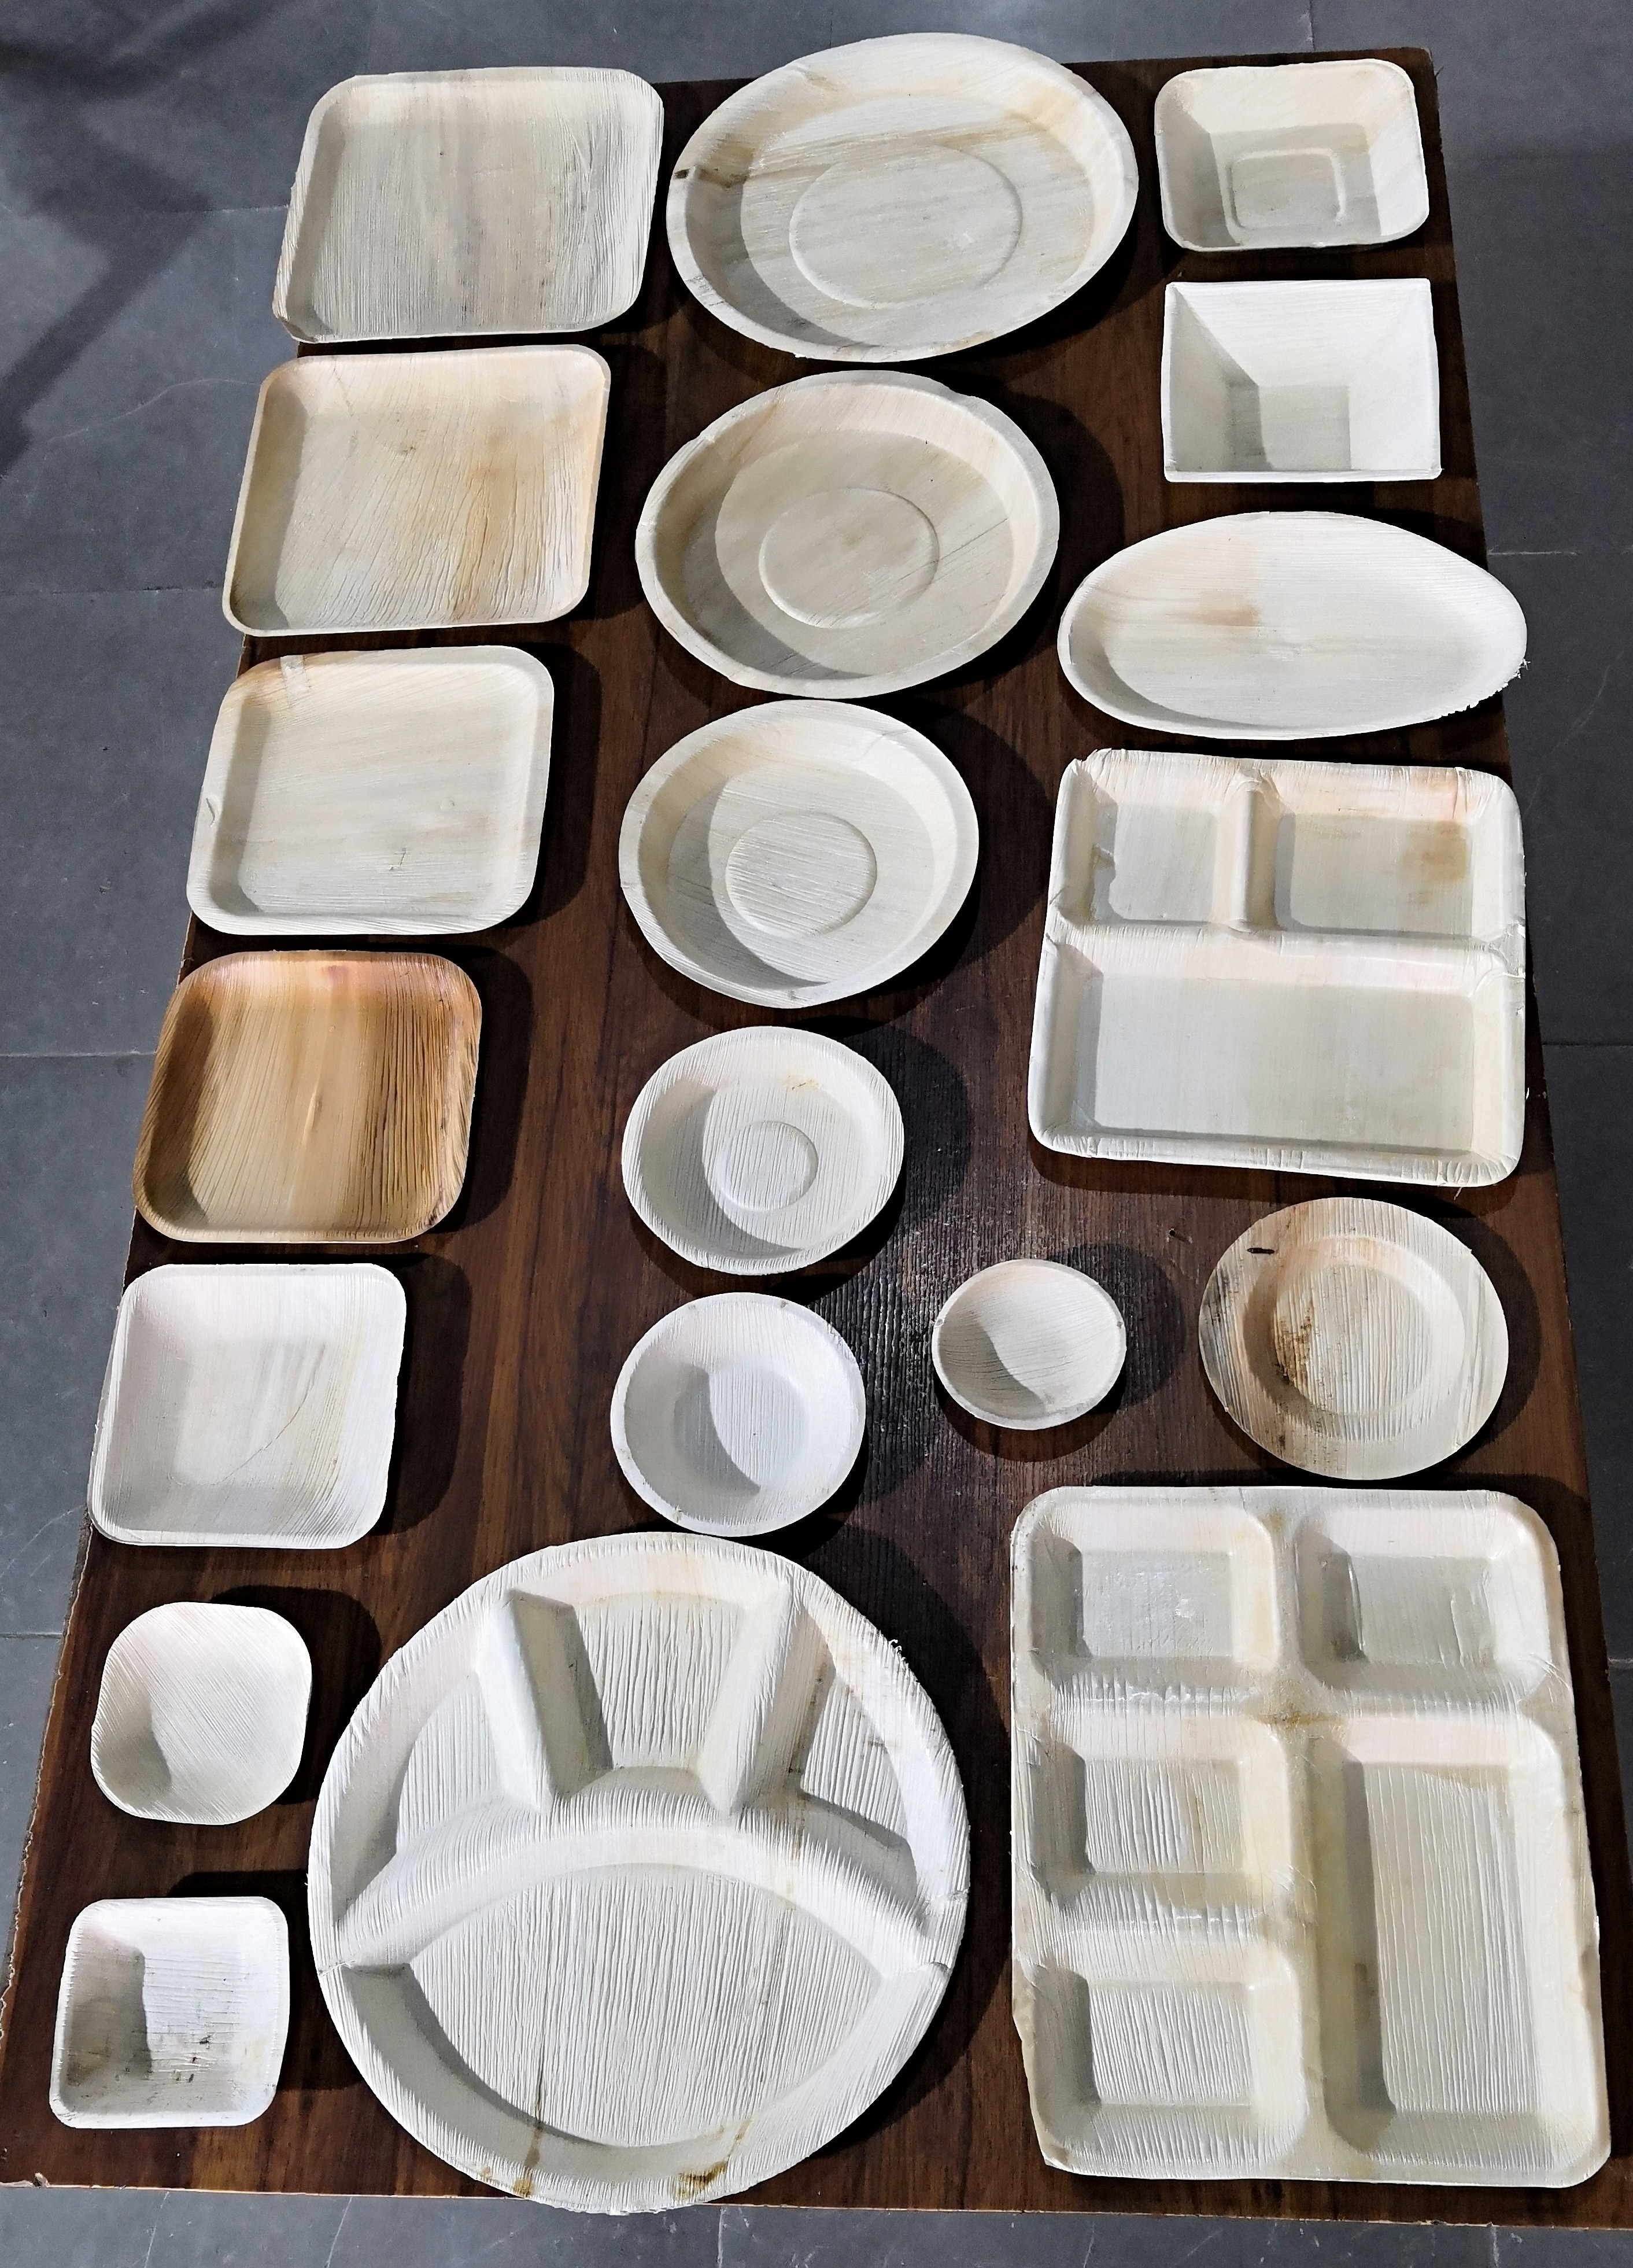 Areca 3 compartmental meal tray